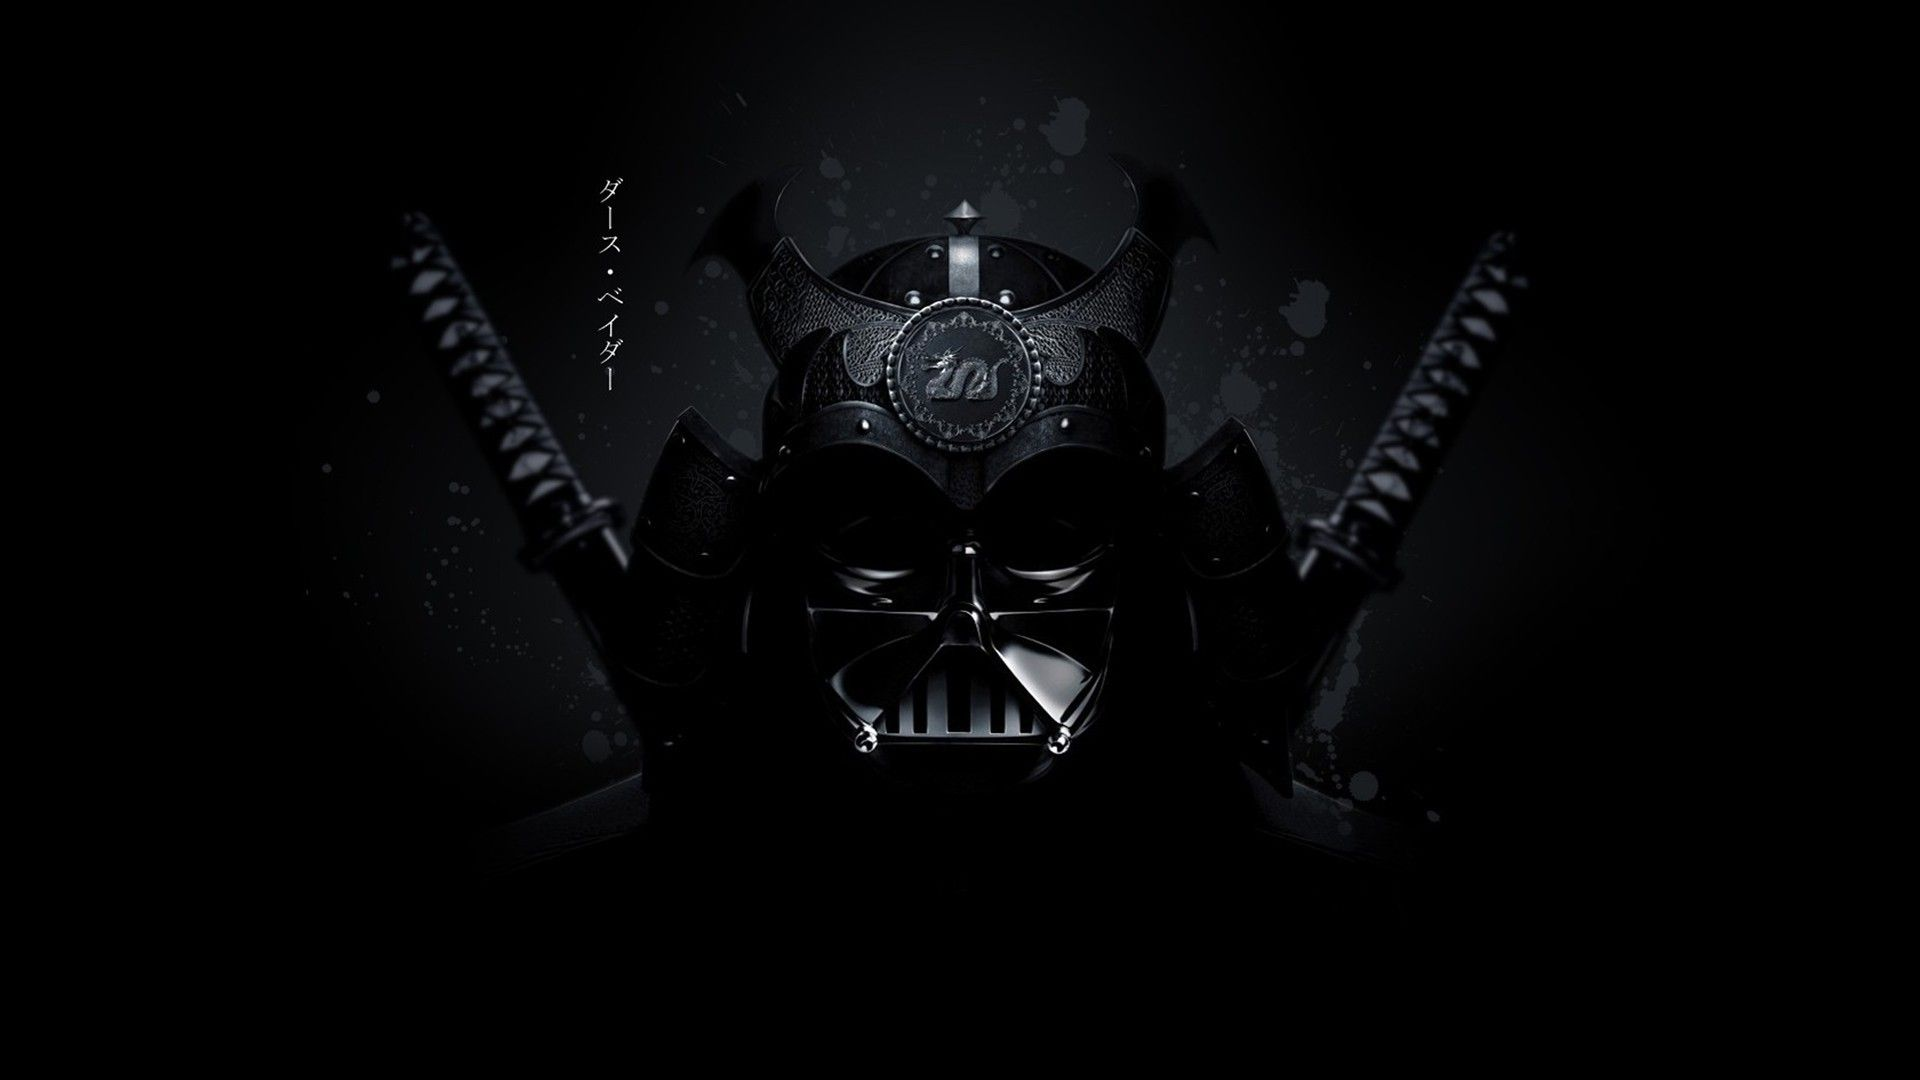 Wallpapers Darth Vader Render Samurai Star Wars Hd